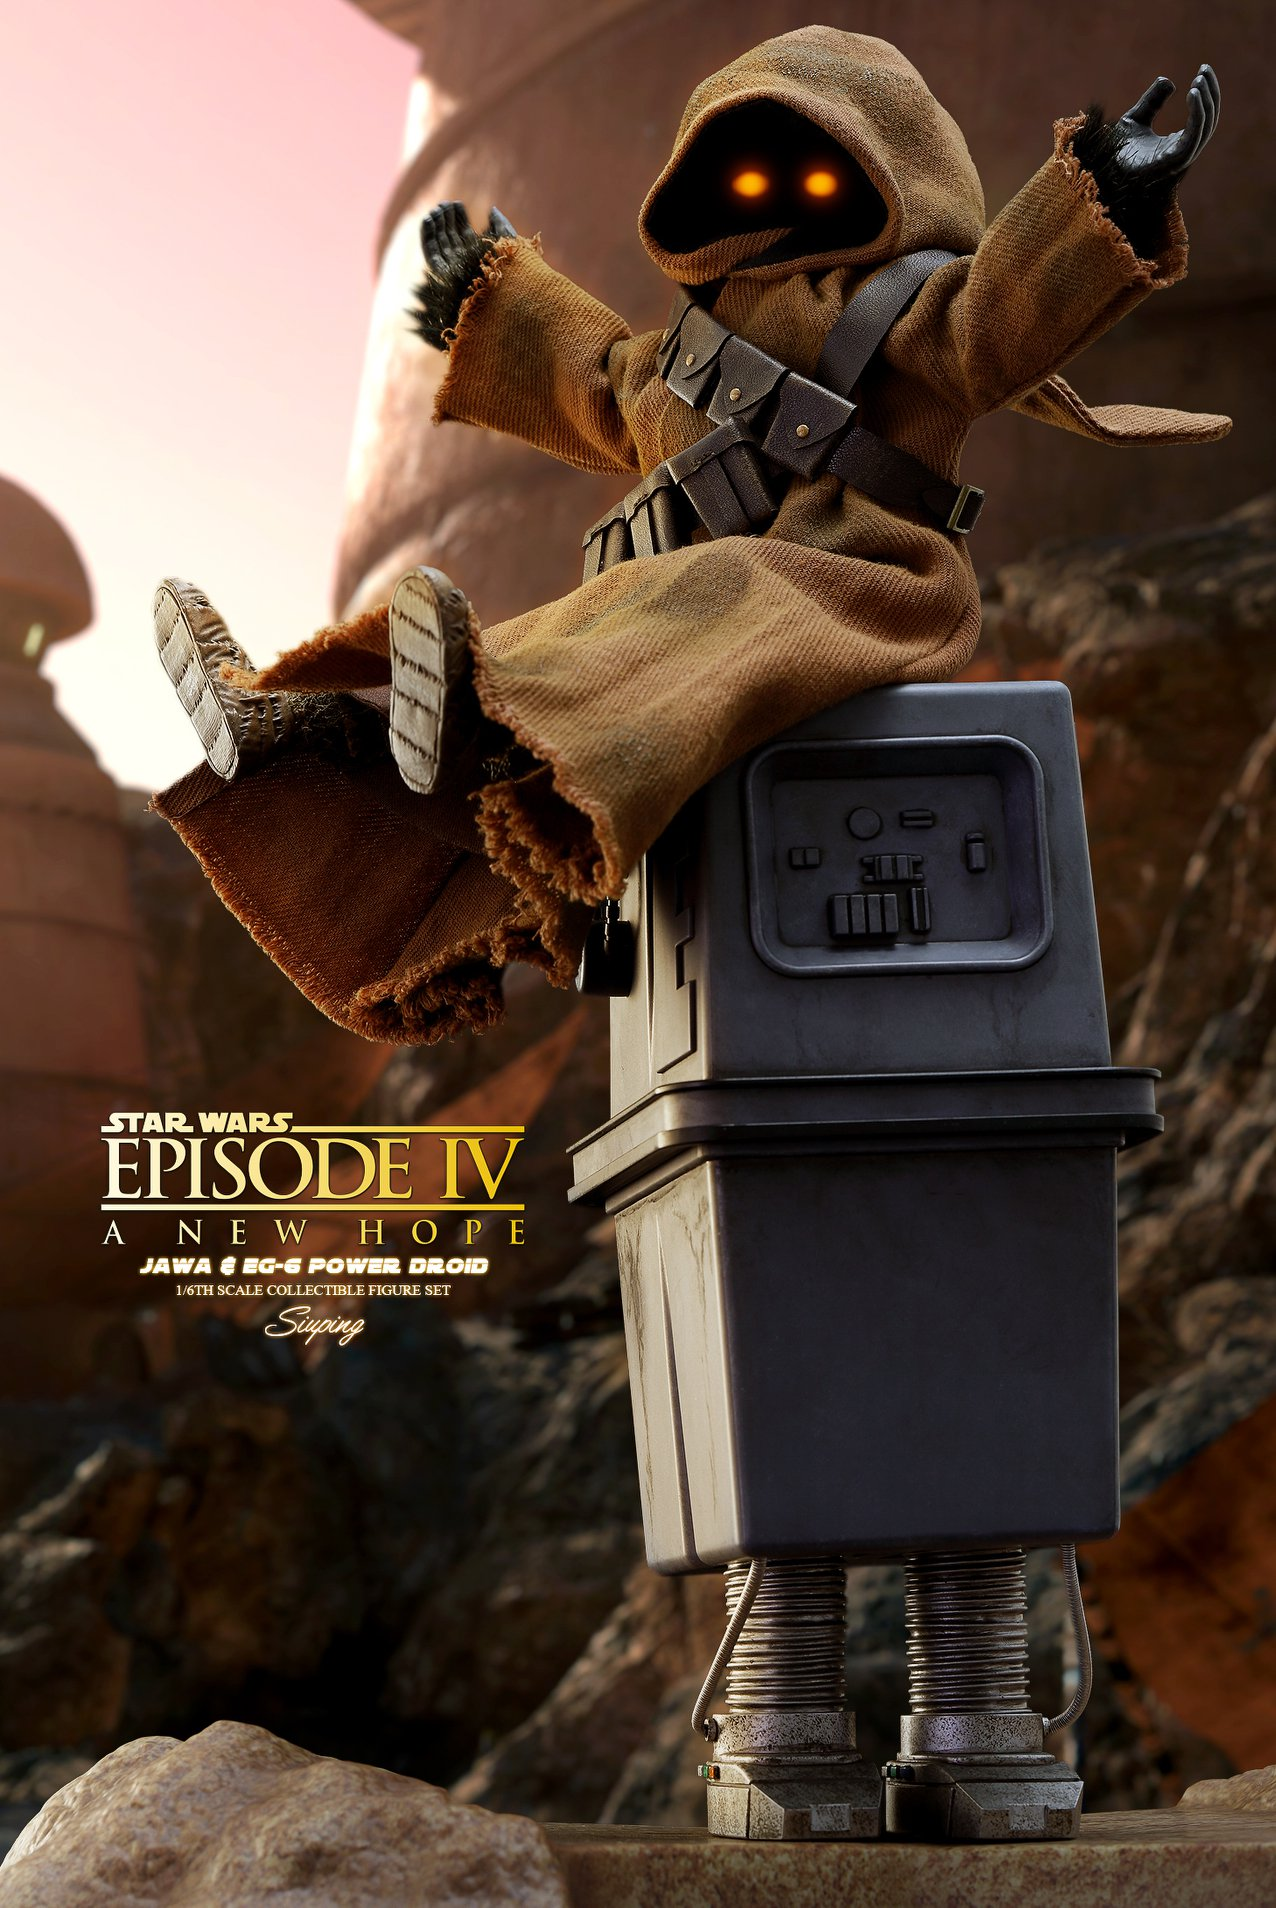 Hot Toys Jawa & EG-6 Power Droid